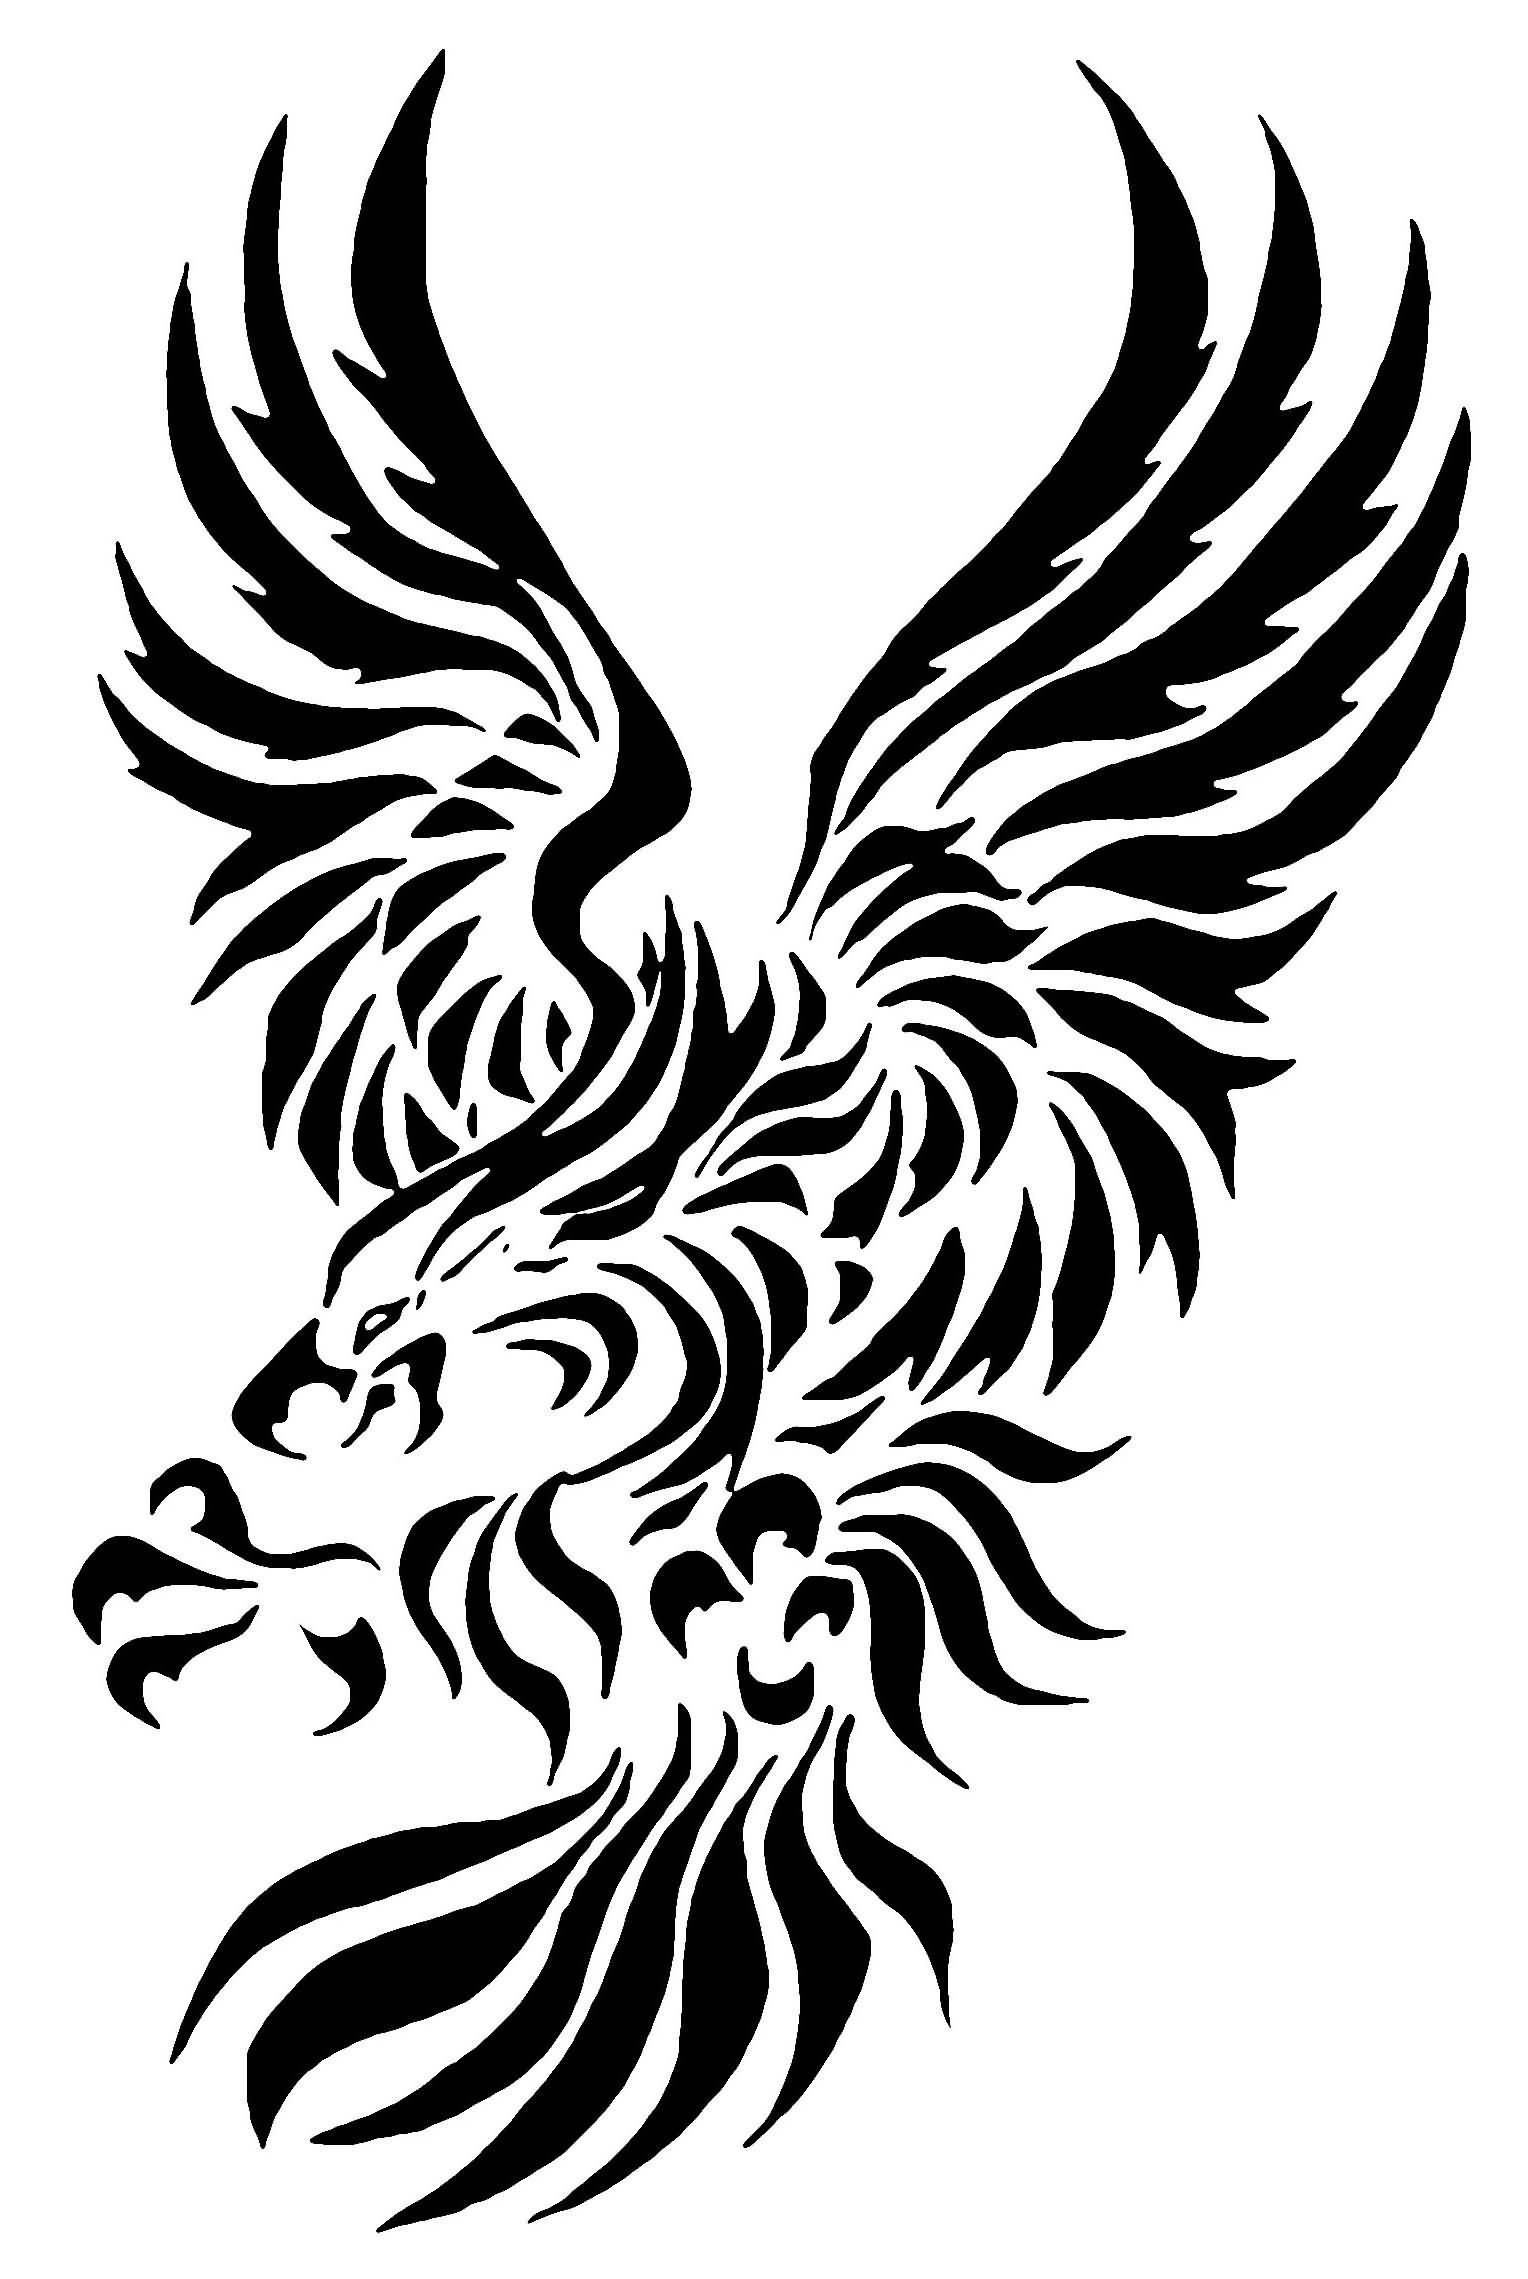 Black Ink Tribal Eagle Tattoo Design On Paper